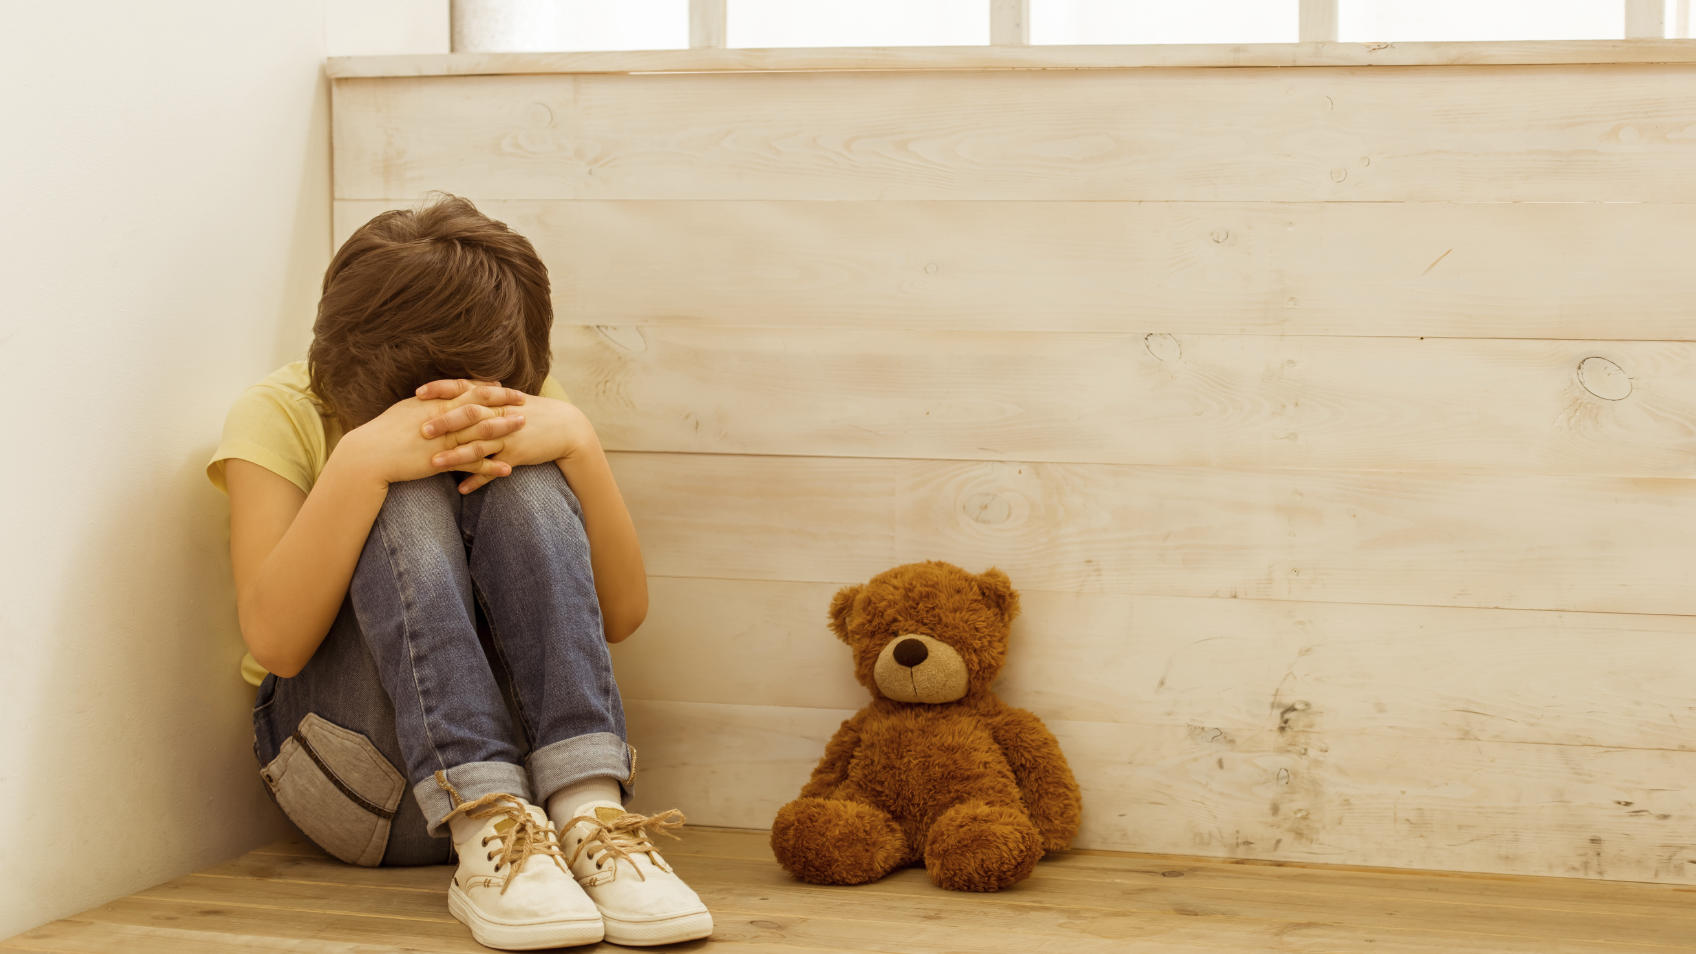 Check in on your child's feelings.